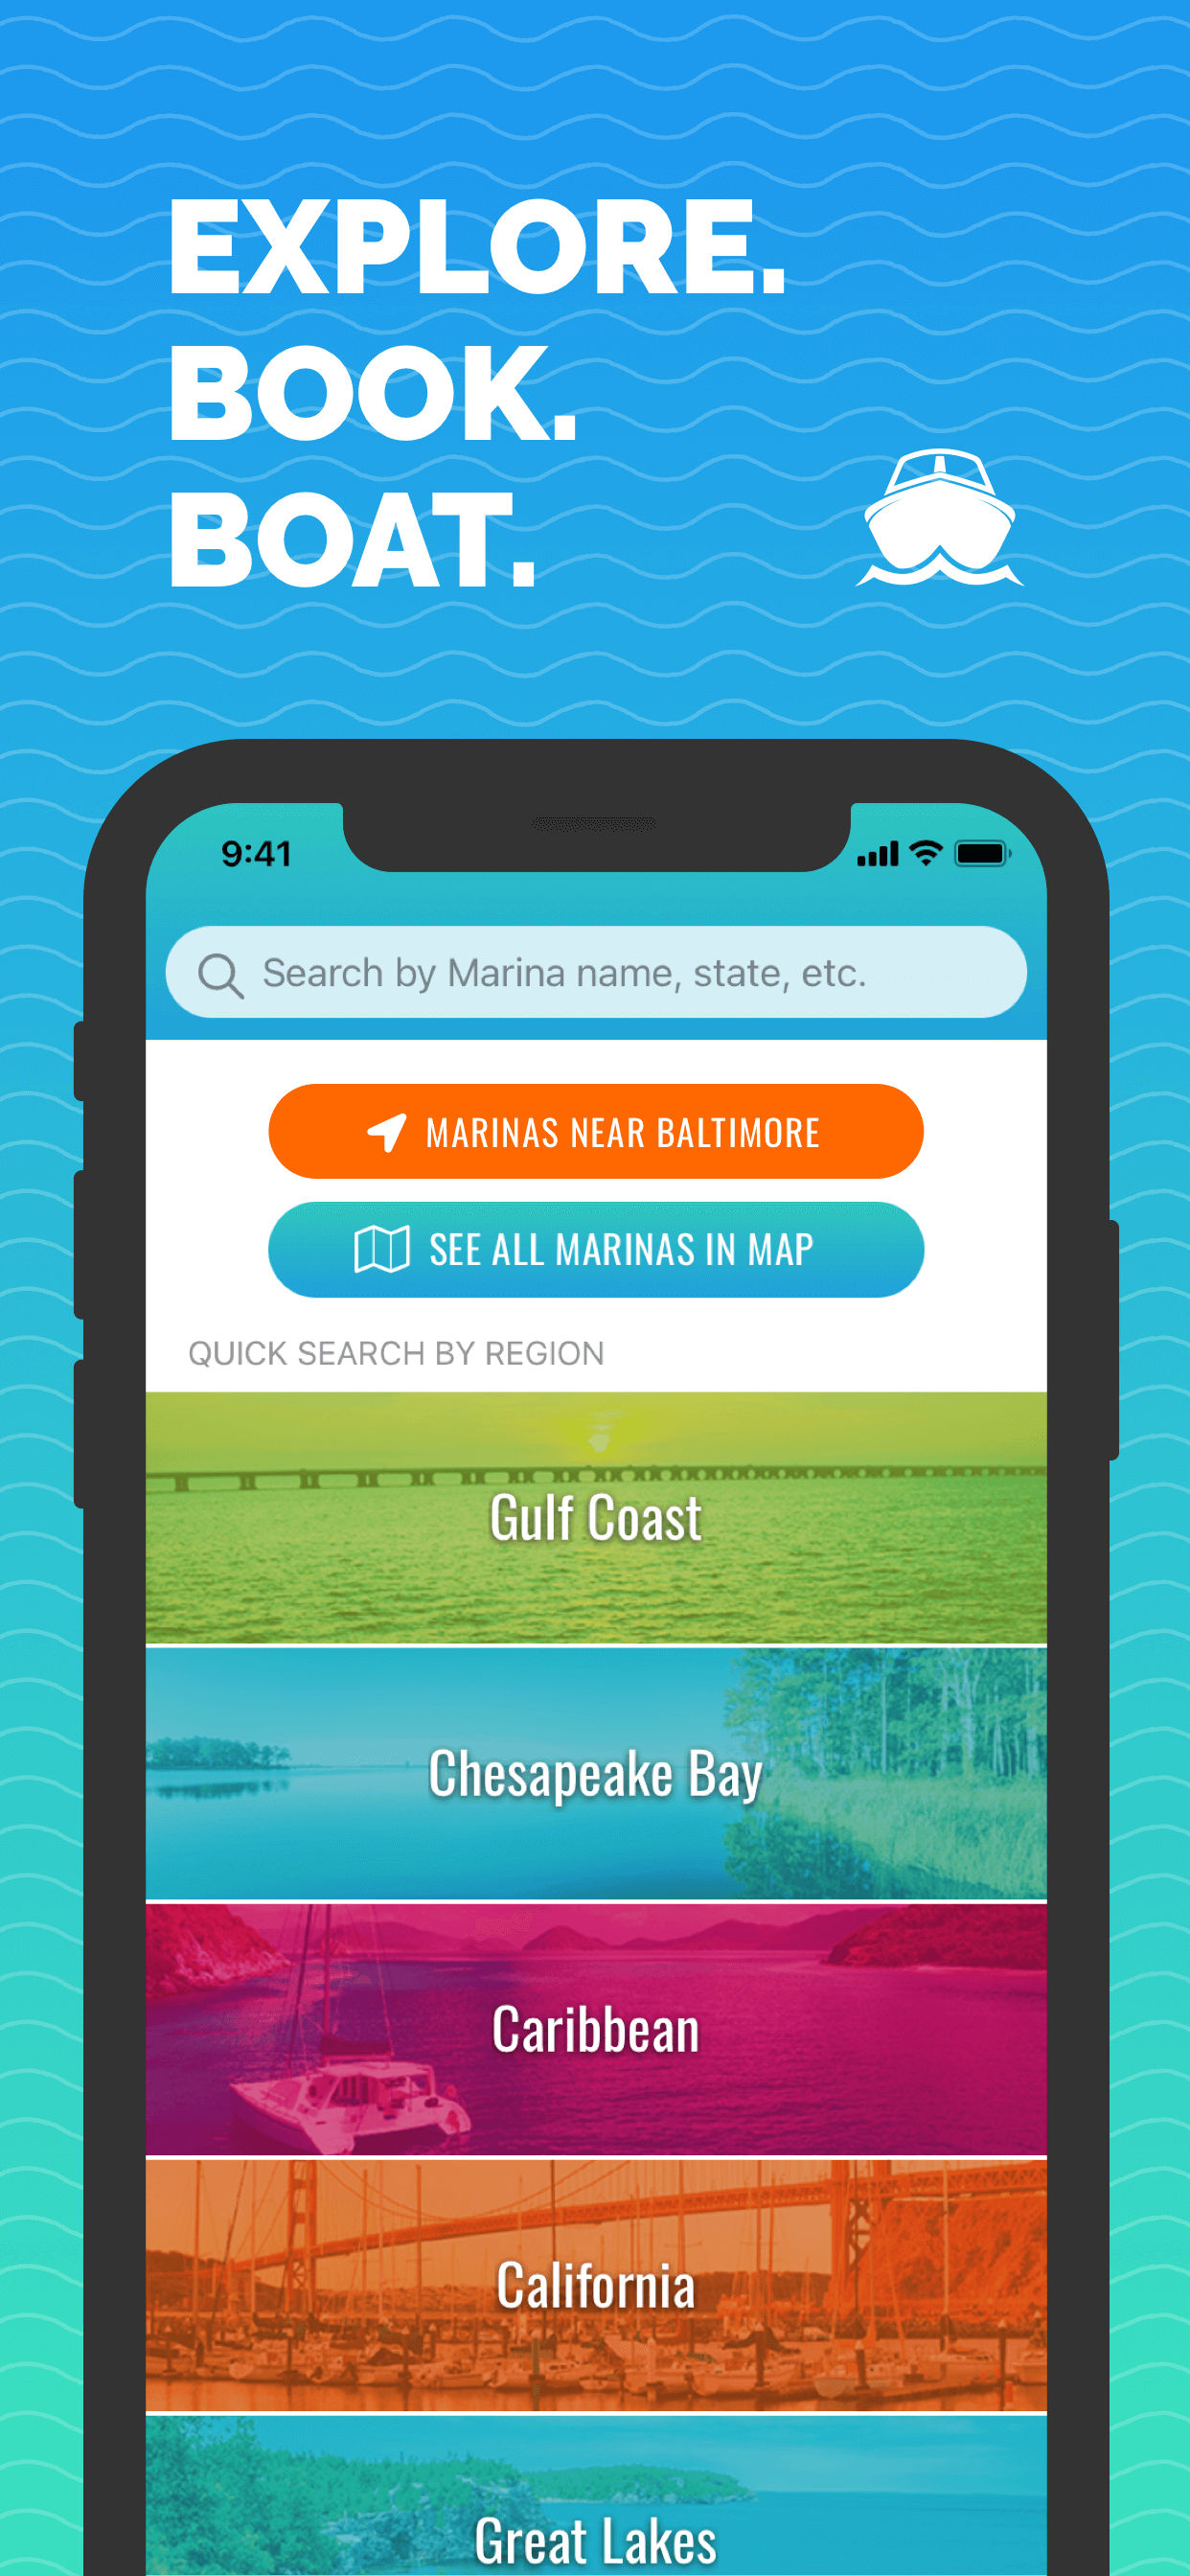 Search Tab - Snag-A-Slip 2.0 - Mobile App - Updates - Book Boat Slips